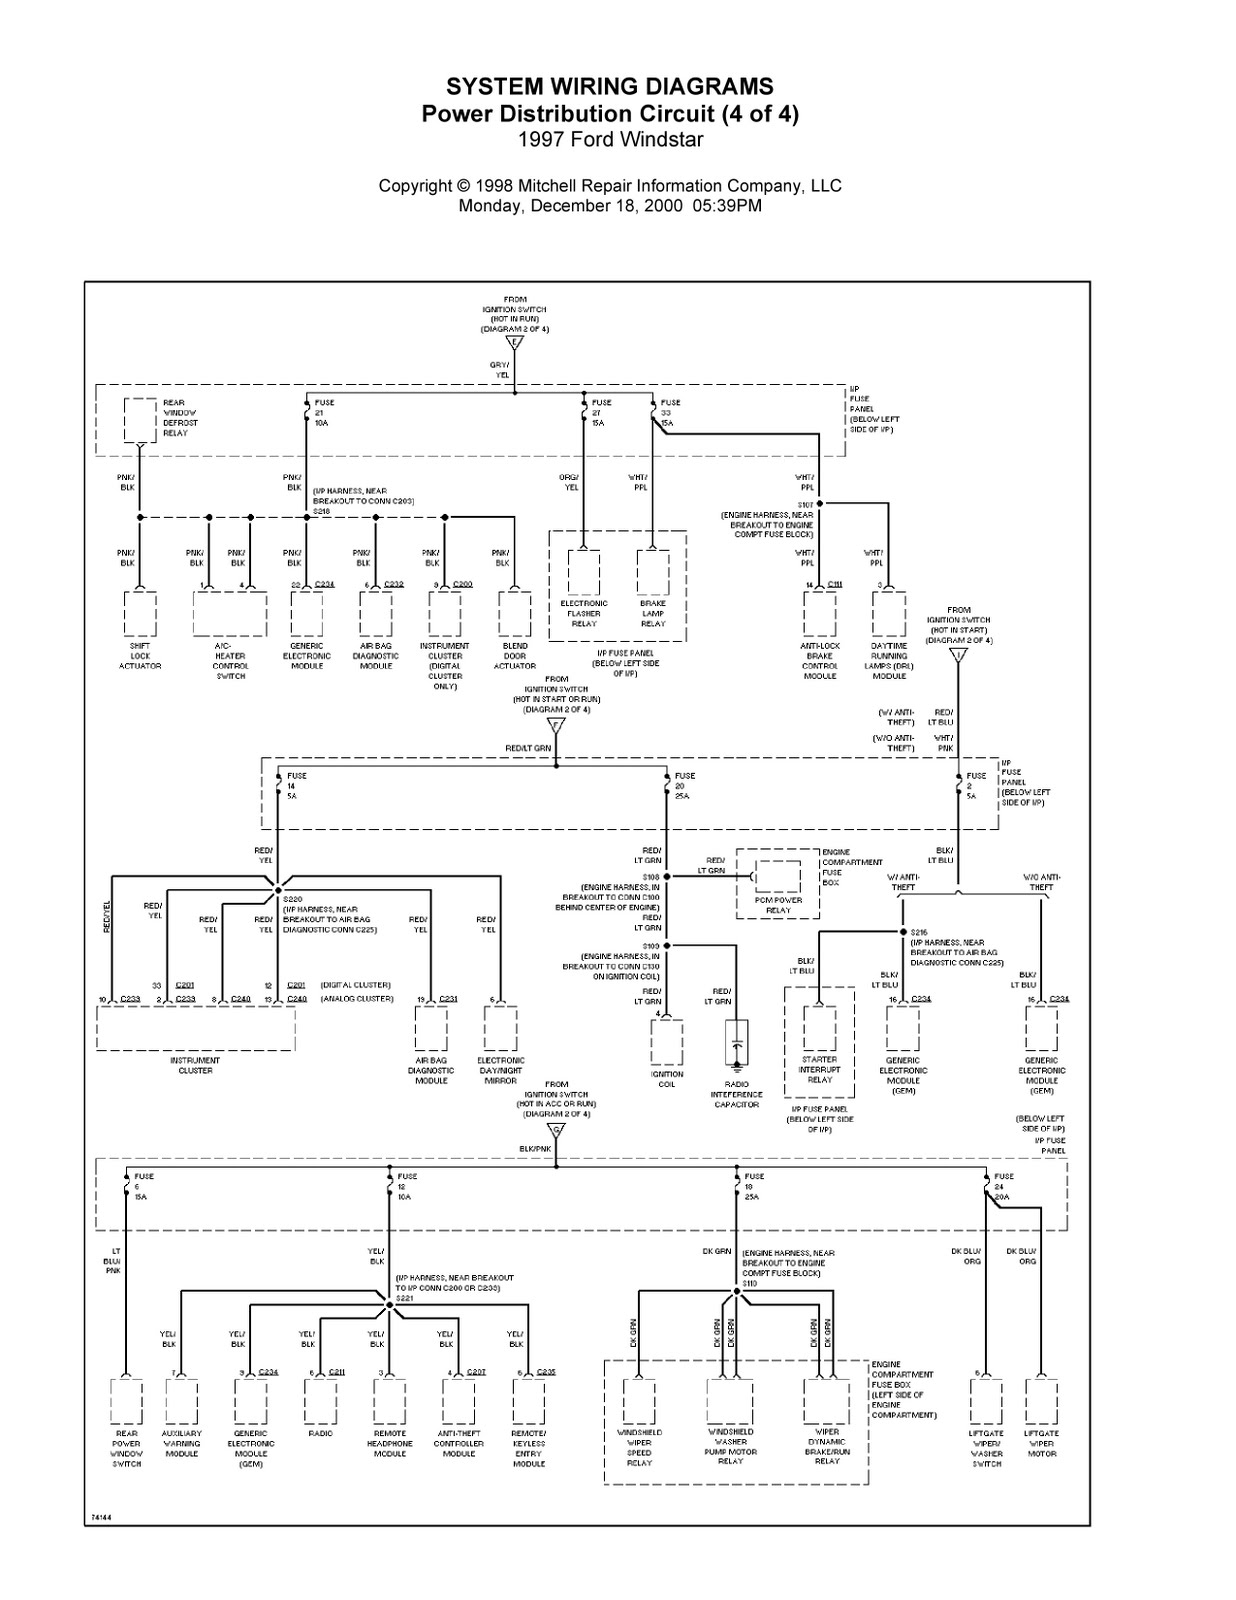 Ford Windstar Electrical Wiring Diagrams 1997 Fuse Diagram Complete System 01